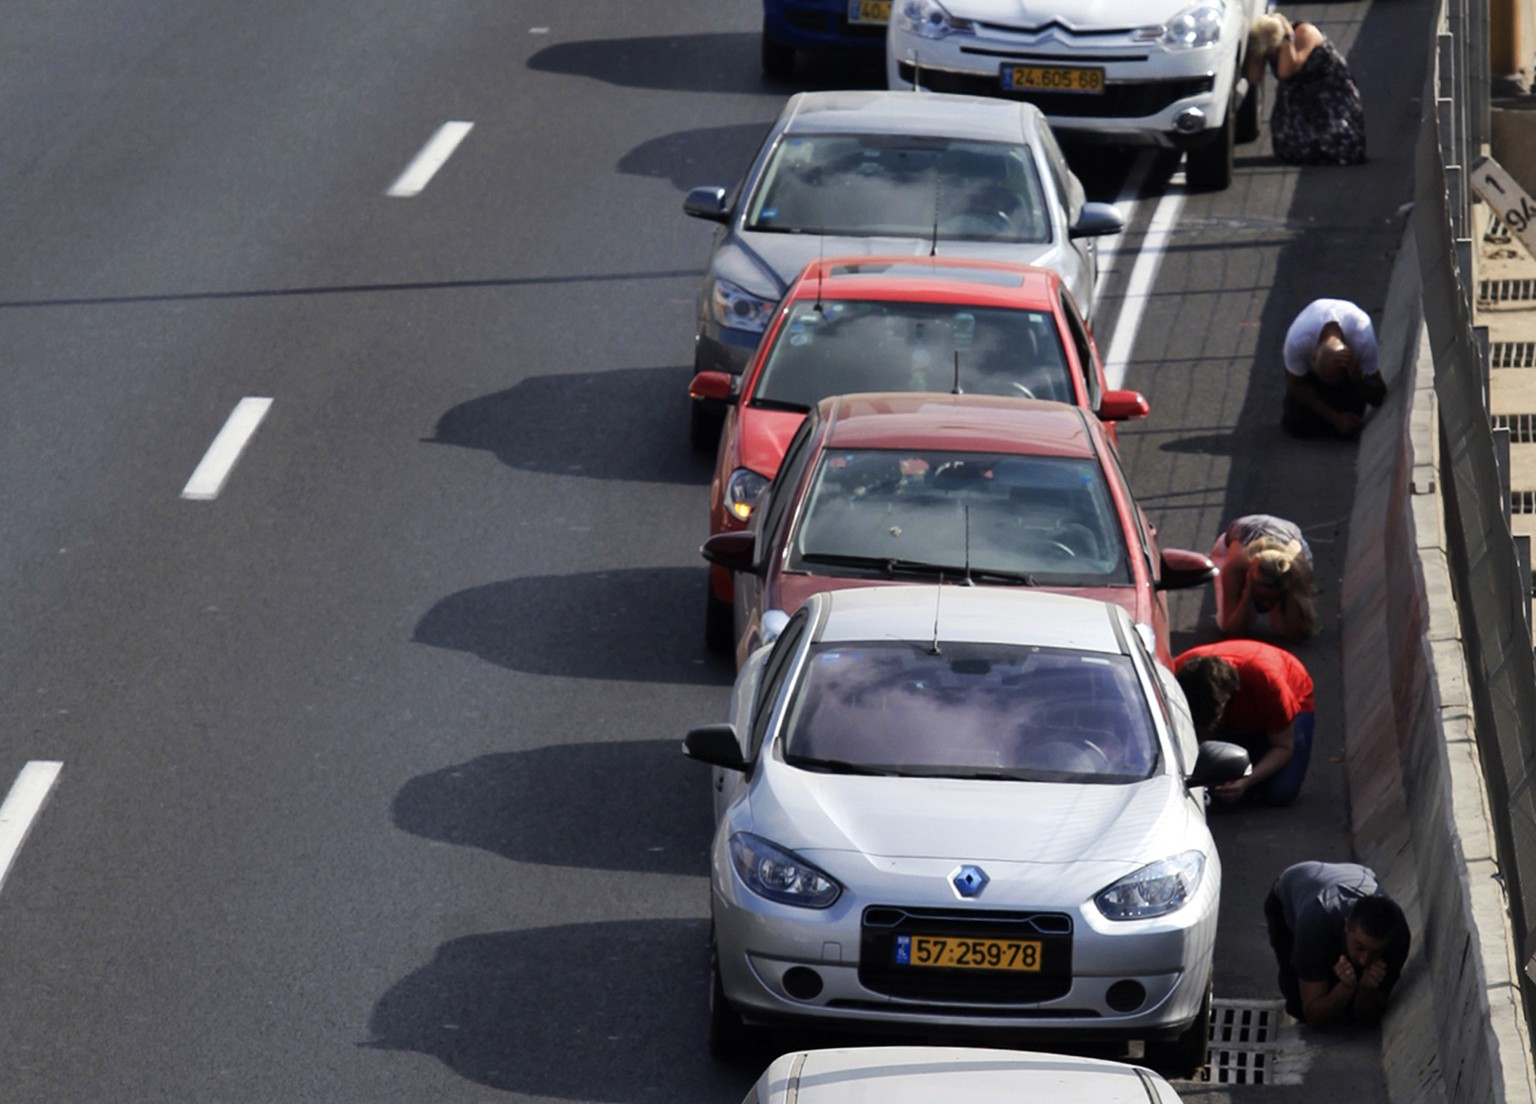 Drivers take cover beside their cars on a highway as an air raid siren, warning of incoming rockets, sounds in Tel Aviv July 9, 2014. Israeli air strikes shook Gaza every few minutes on Wednesday, and militants kept up rocket fire at Israel's heartland in intensifying warfare that Palestinian officials said has killed at least 47 people in the Hamas-dominated enclave. REUTERS/Stringer (ISRAEL - Tags: POLITICS CIVIL UNREST)